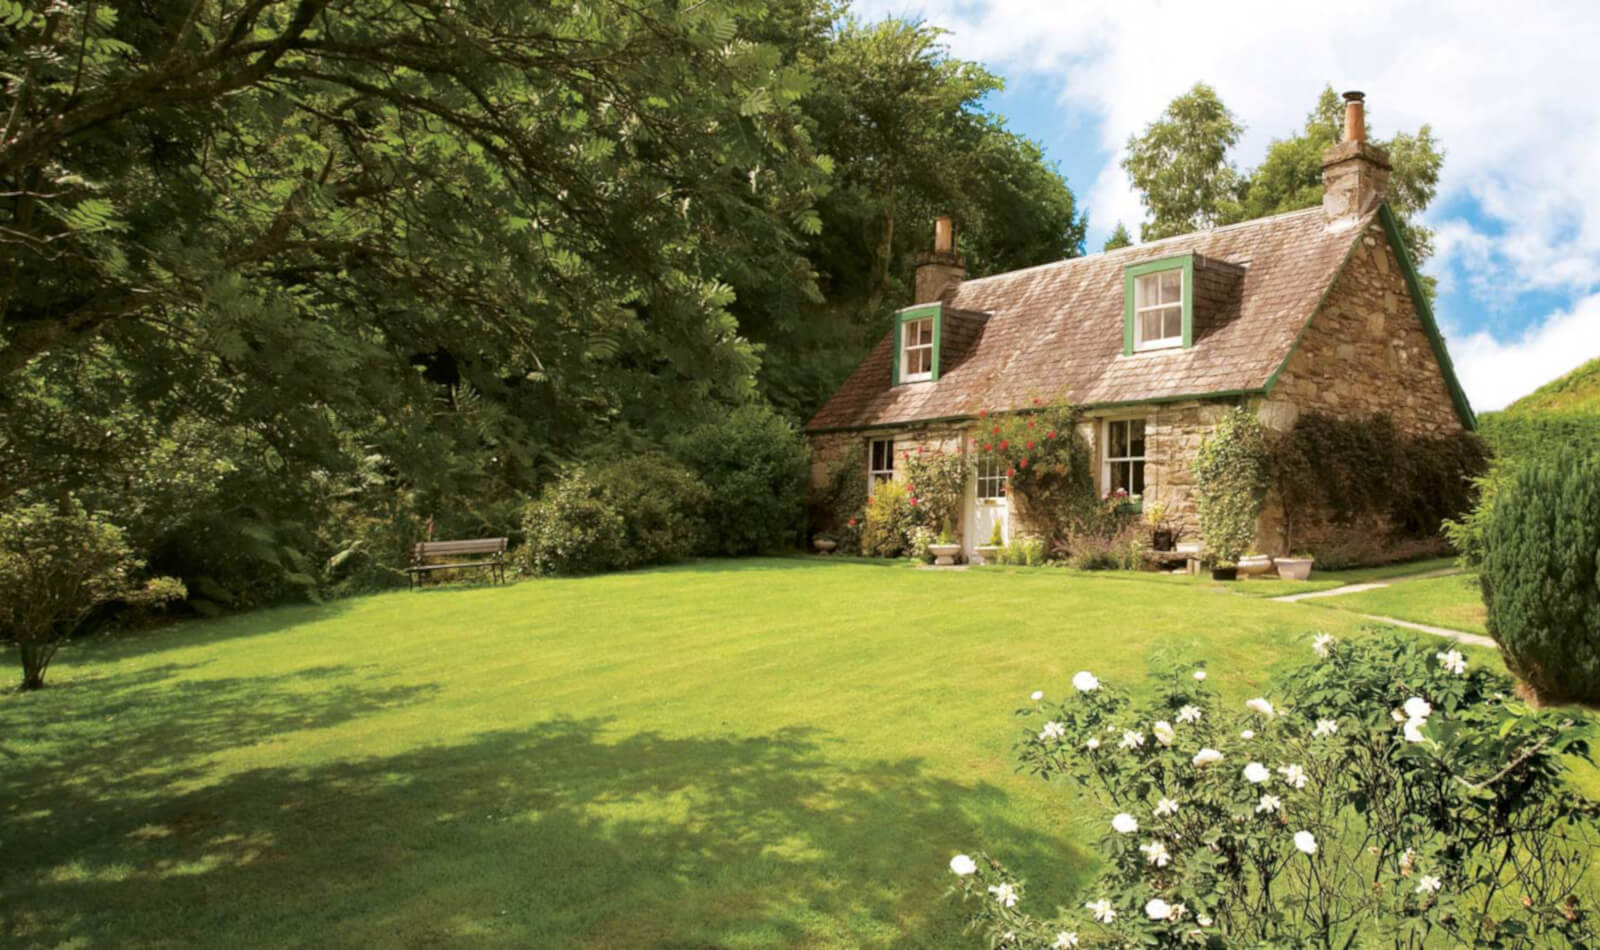 Last Minute Cottages in <span>Cotswolds</span> - Save up to 60%